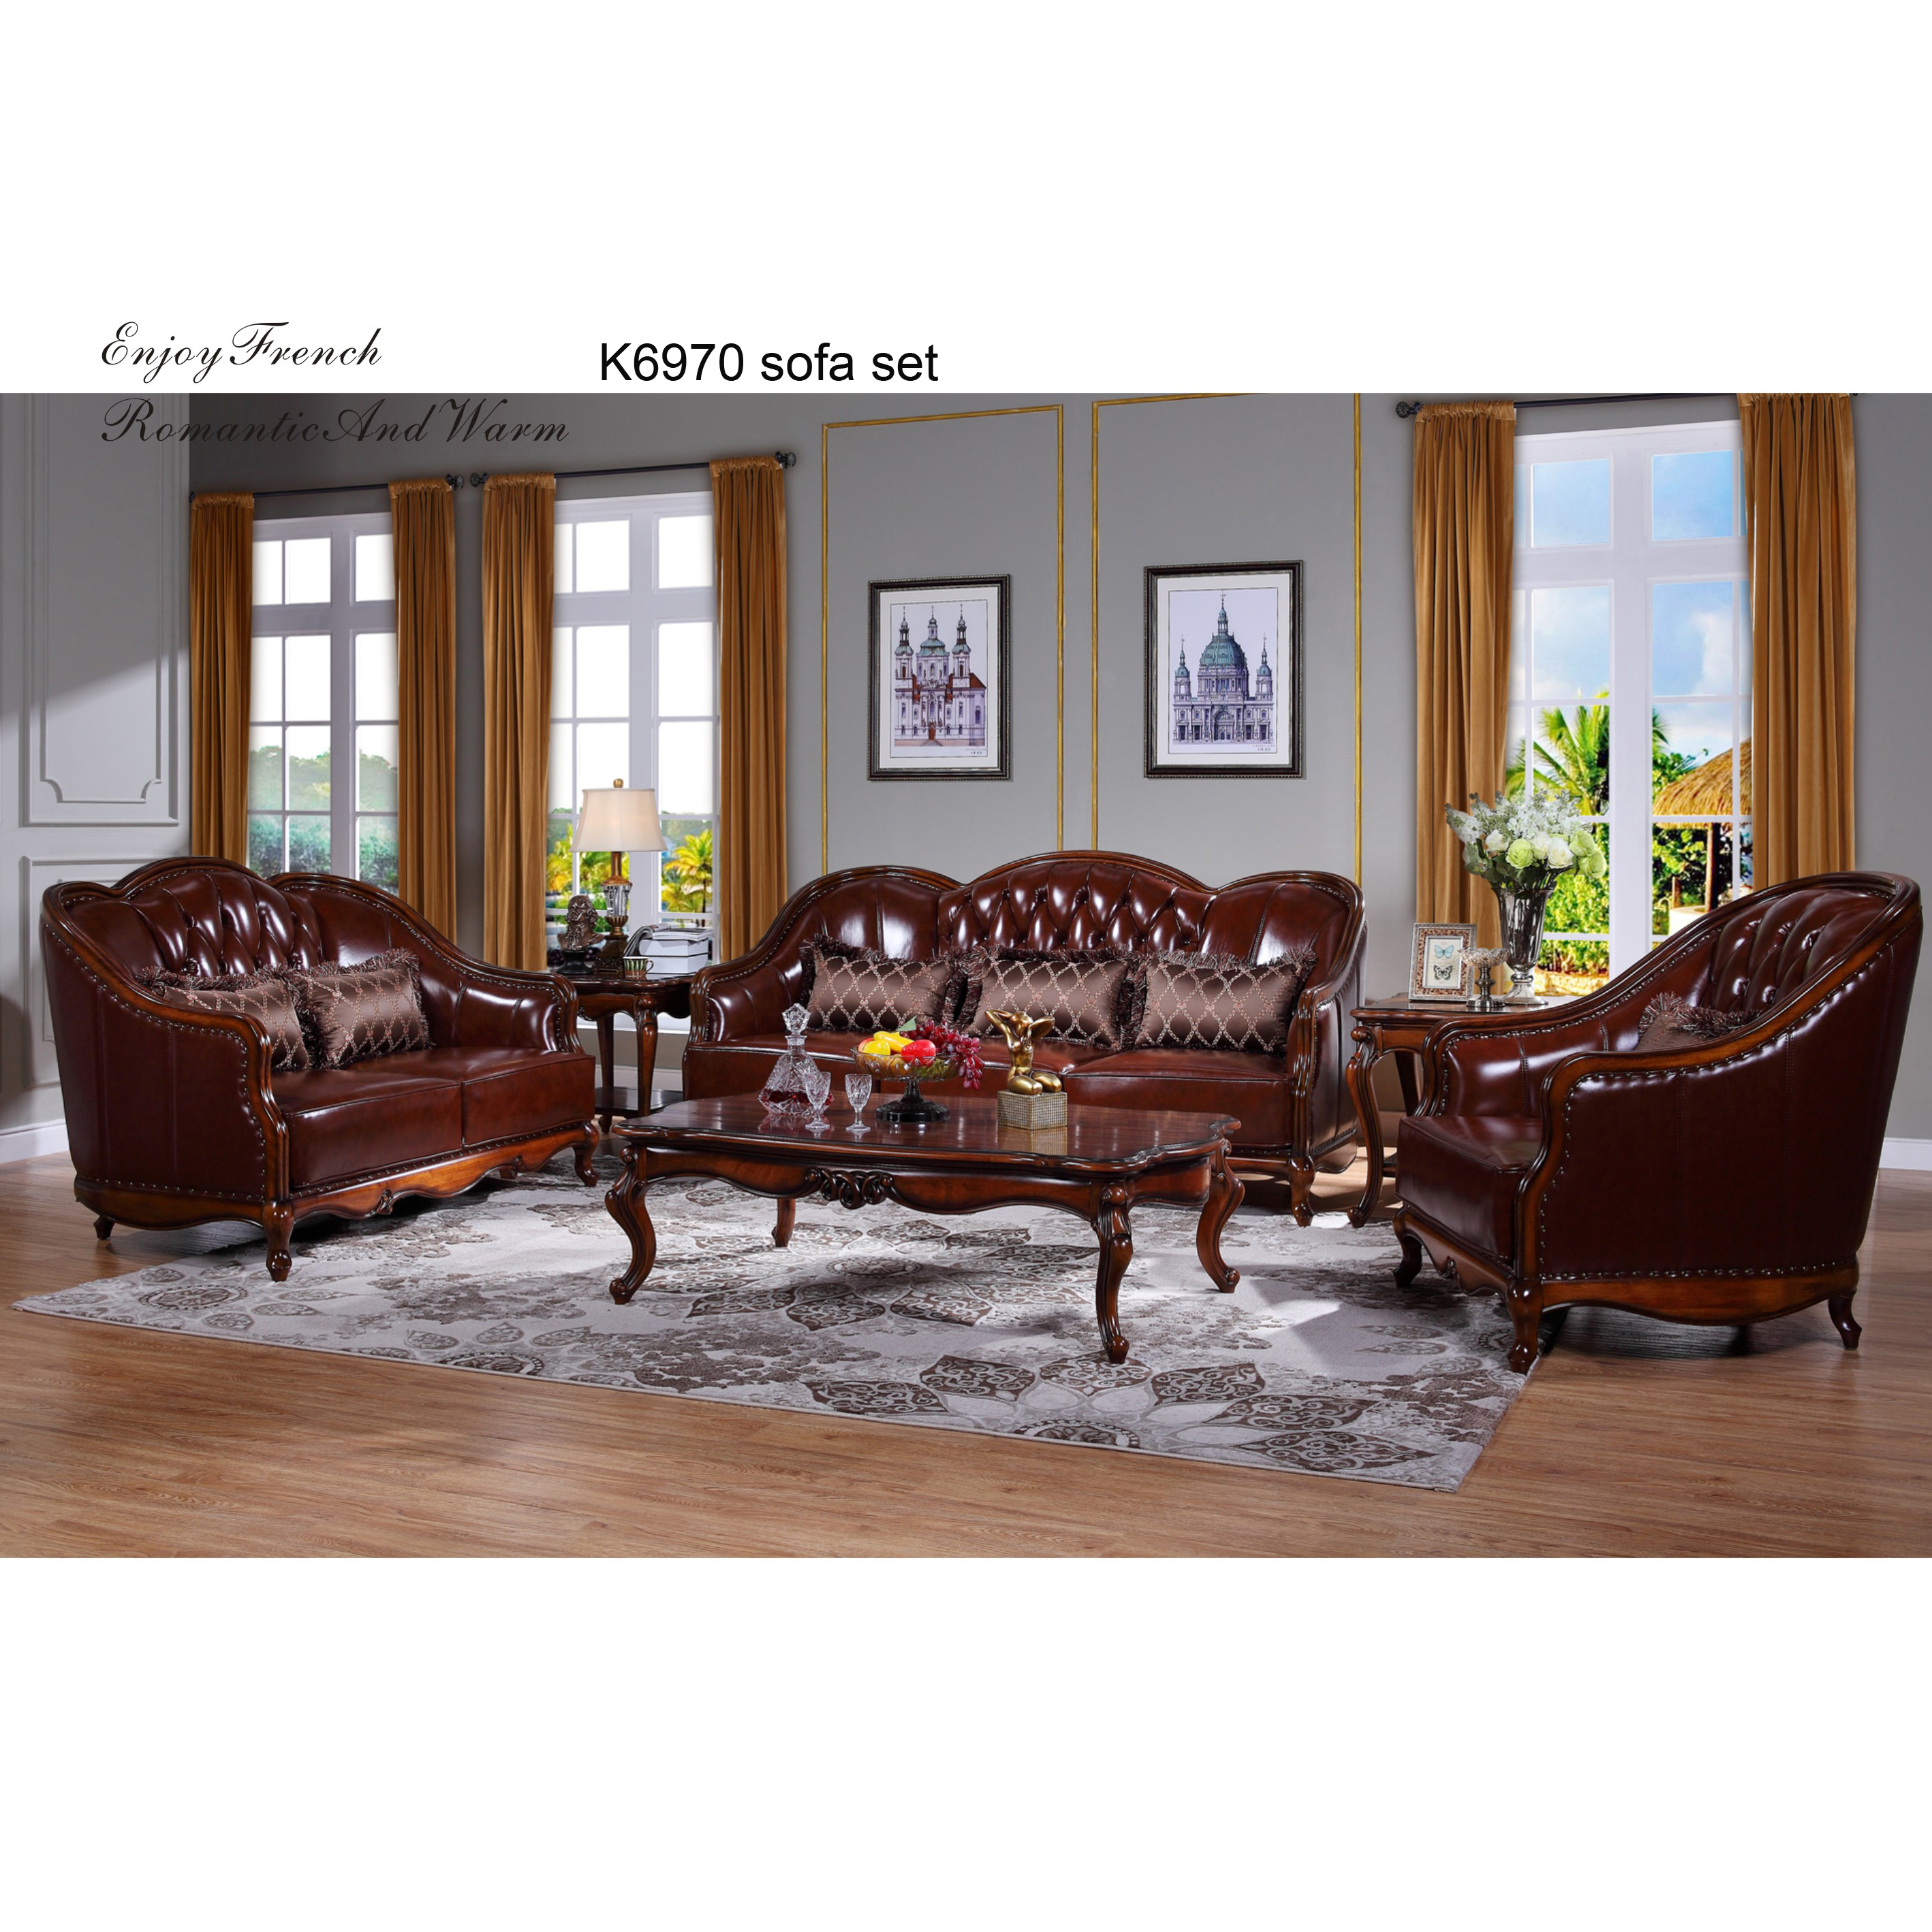 K6970 Best Price American Style Leather Sofa With Wooden Frame Buy Fancy Living Room Sofa Furniture Direct From China Furniture American Style